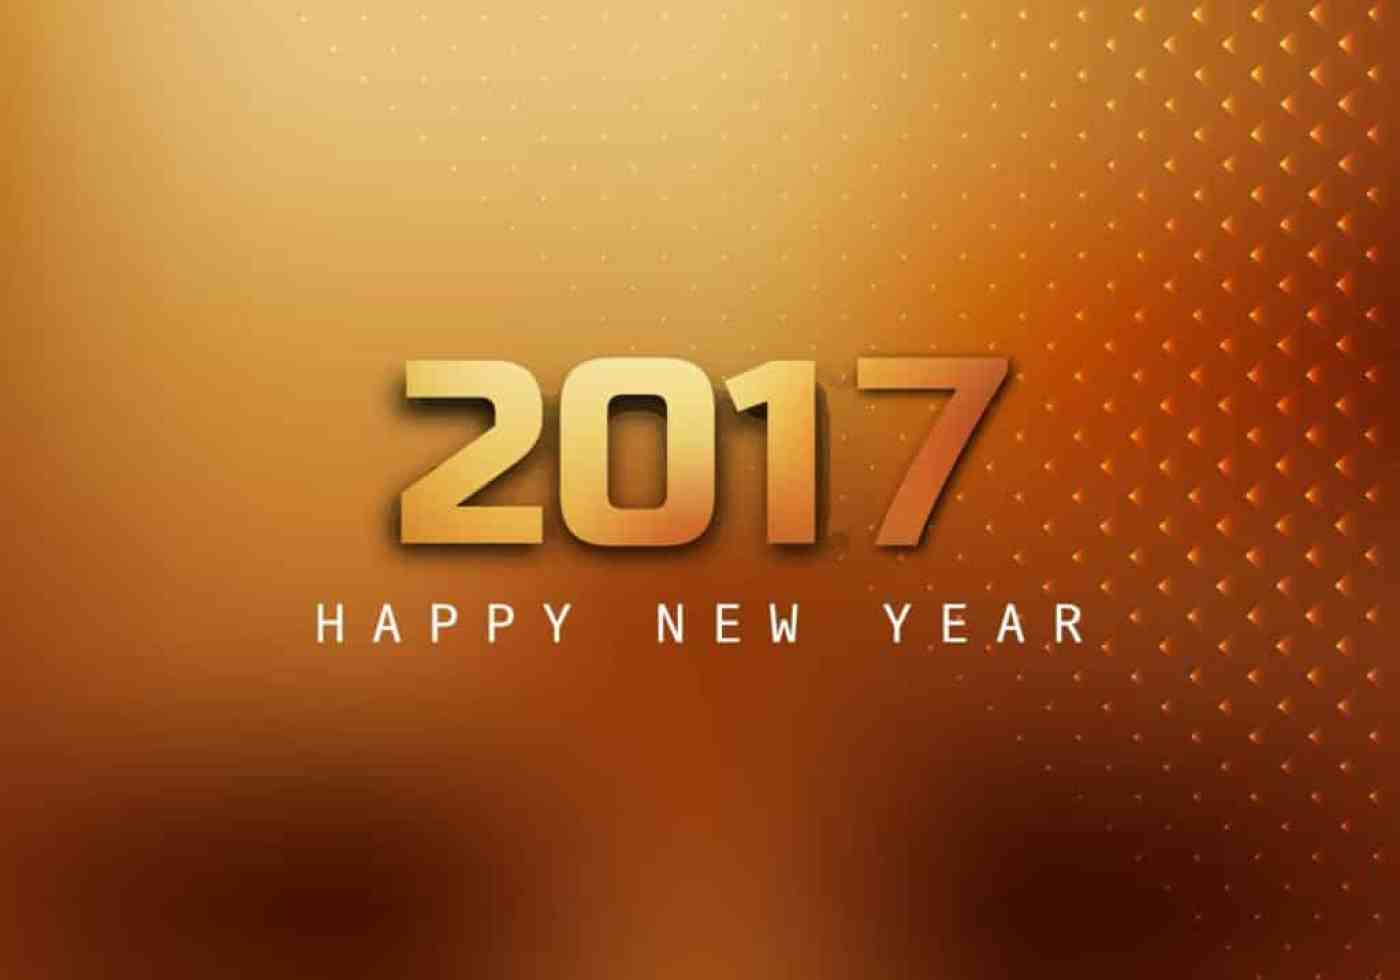 Happy New Year 2017 greetings with brown background